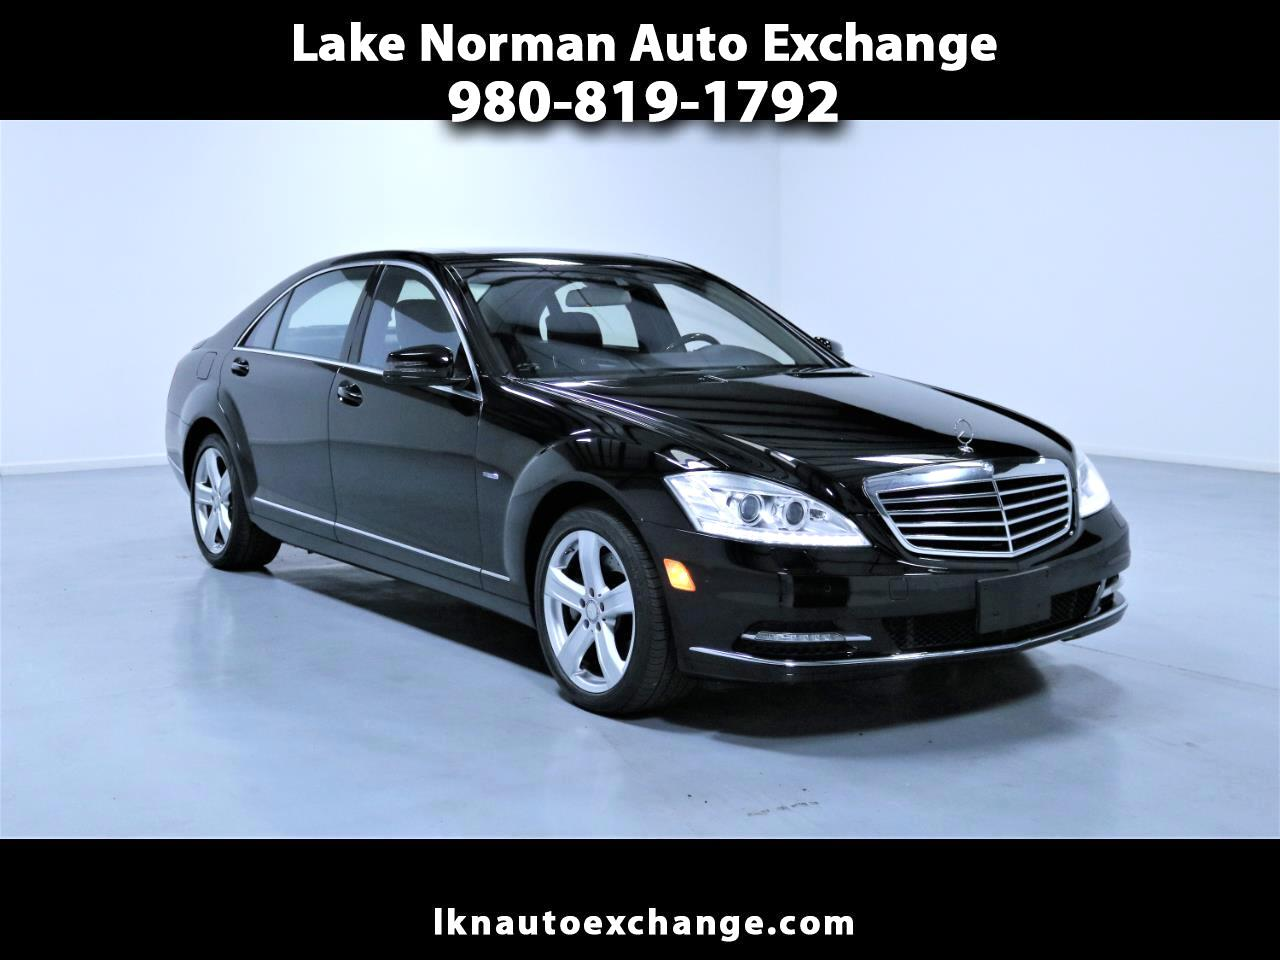 2012 Mercedes-Benz S-Class 4dr Sdn S 550 4MATIC Blue Efficiency